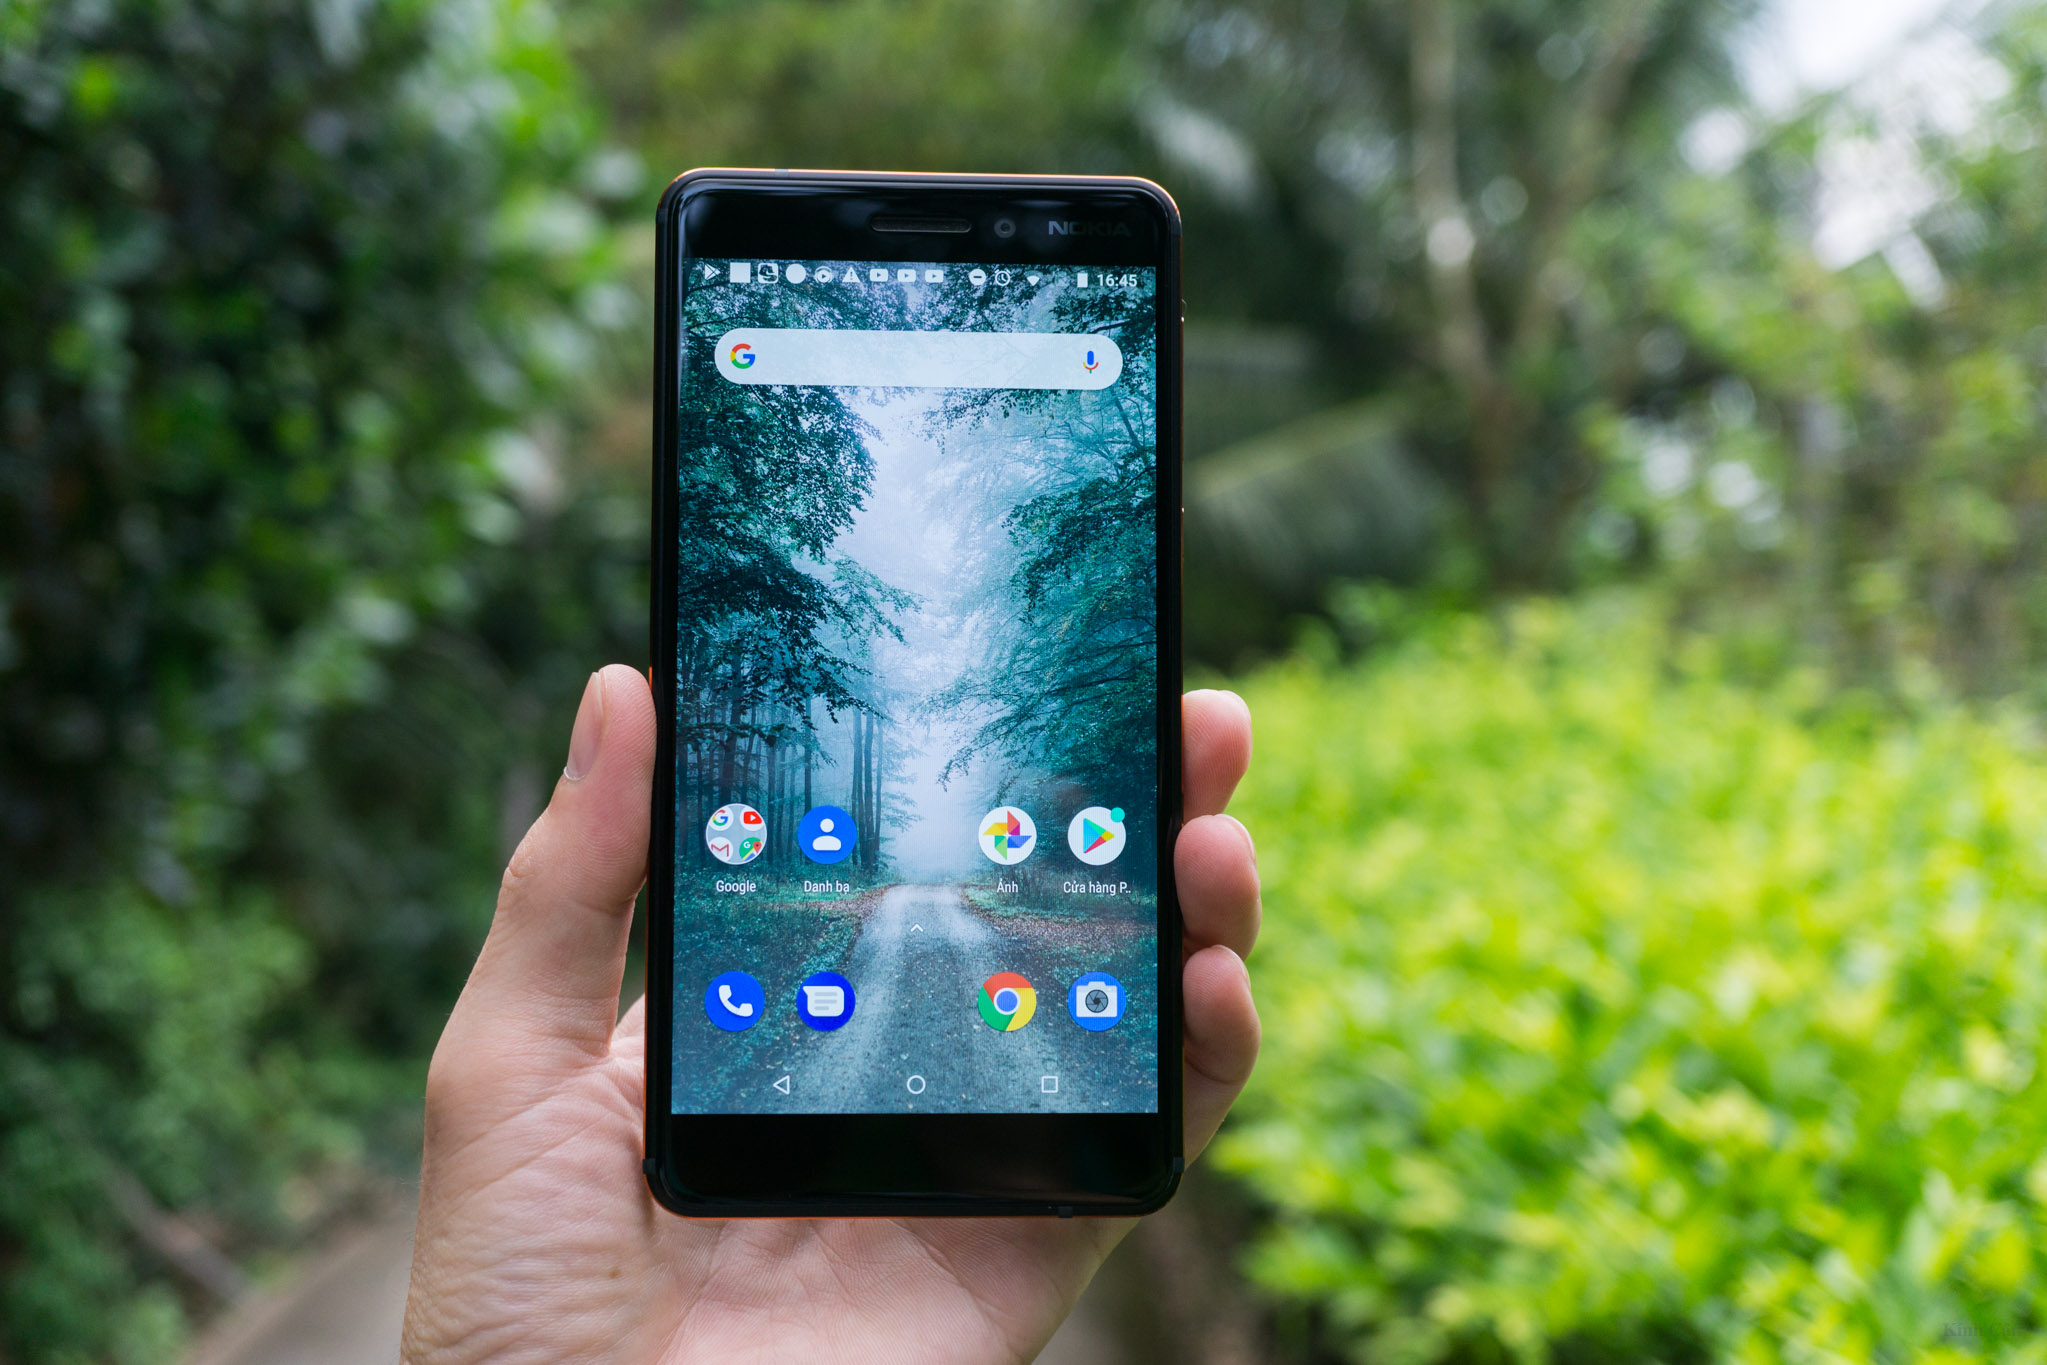 Android P Nokia 6 mới-6.jpg